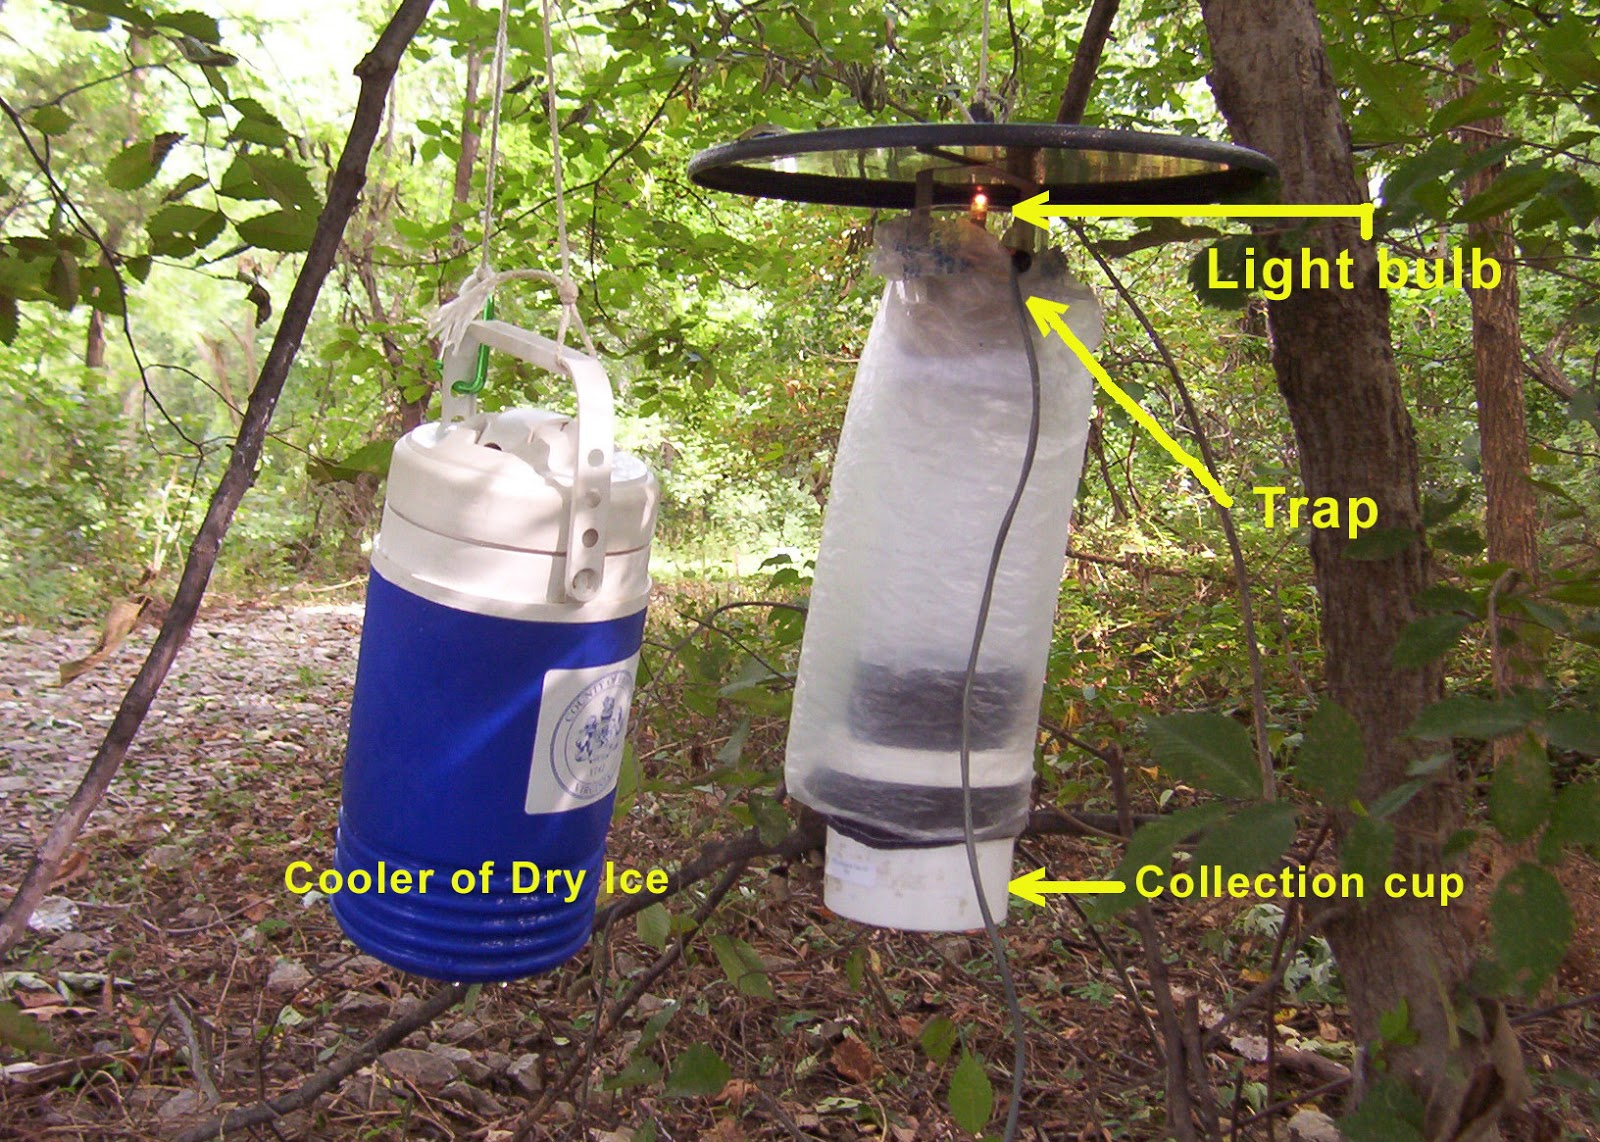 CO2 traps that are currently used attract female mosquitoes when they are searching for a blood meal. Dry ice is CO2 in solid form as it warms up it turns directly into a gas and leaks out of the cooler. This attracts the mosquitoes that are looking for the breath of an animal. Once they come in close they see the light and are attracted towards in (we call this positive phototaxis). A fan then sucks the mosquito into the collection cup where it is unable to escape. My trap would work in a similar method except I would be using the chemicals found in their favorite plants instead of CO2.